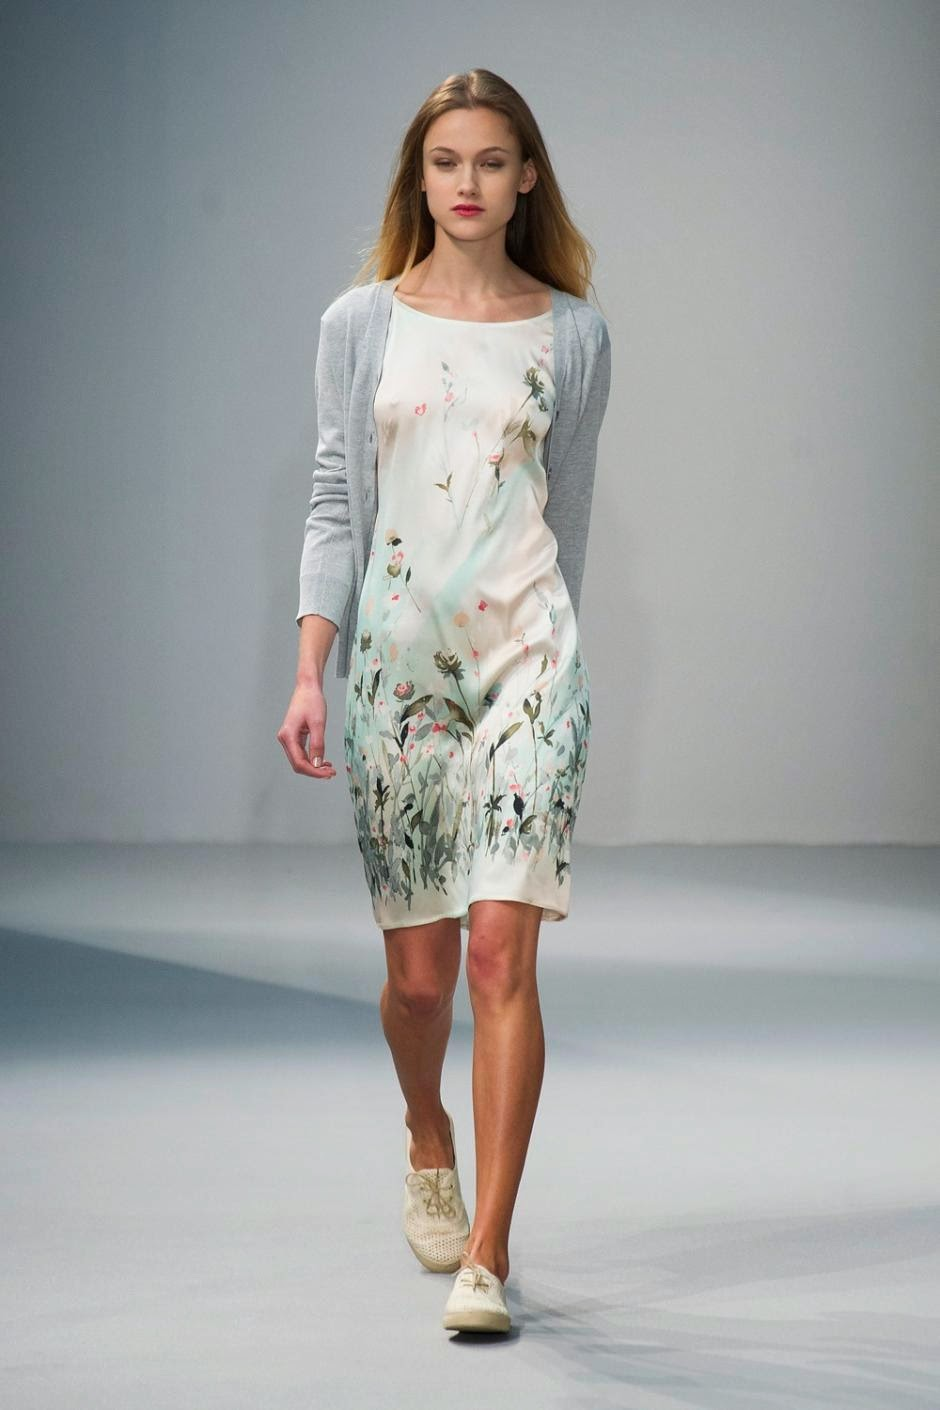 http://www.fashionising.com/trends/b--floral-clothing-floral-prints-52066.html